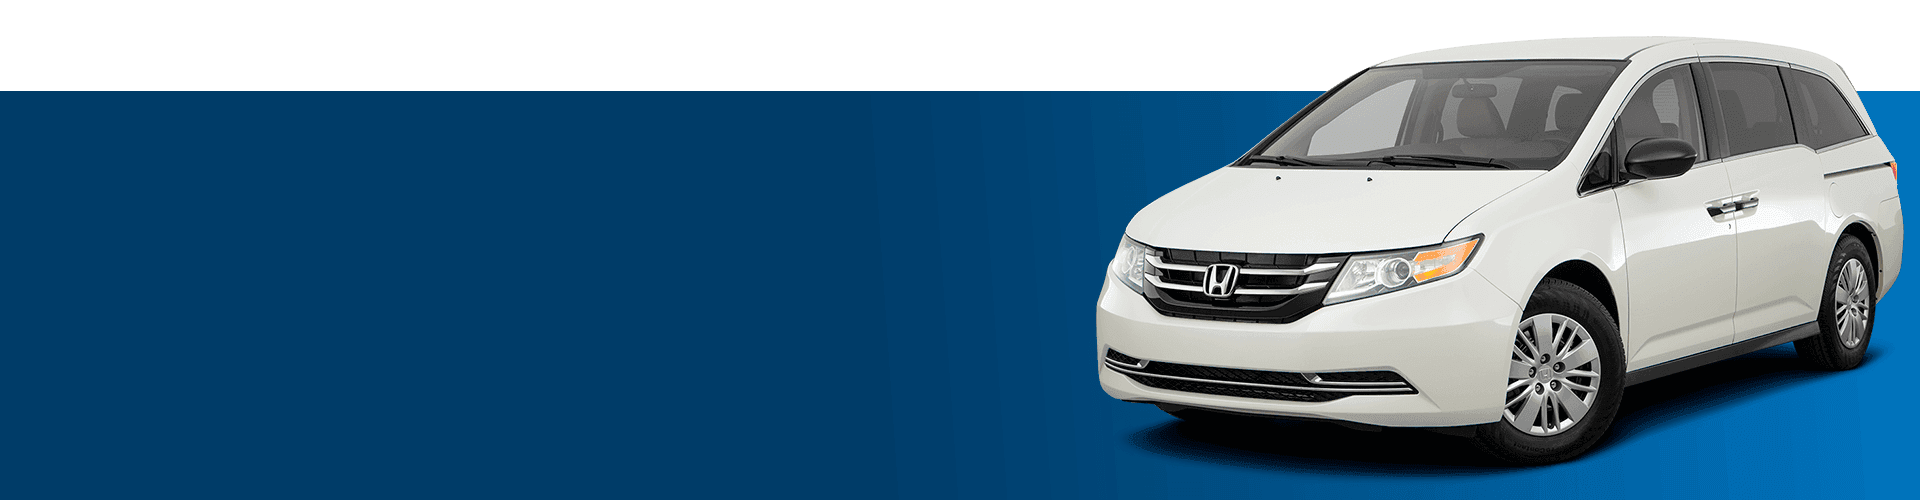 Car Shuttle Service To San Diego Airport